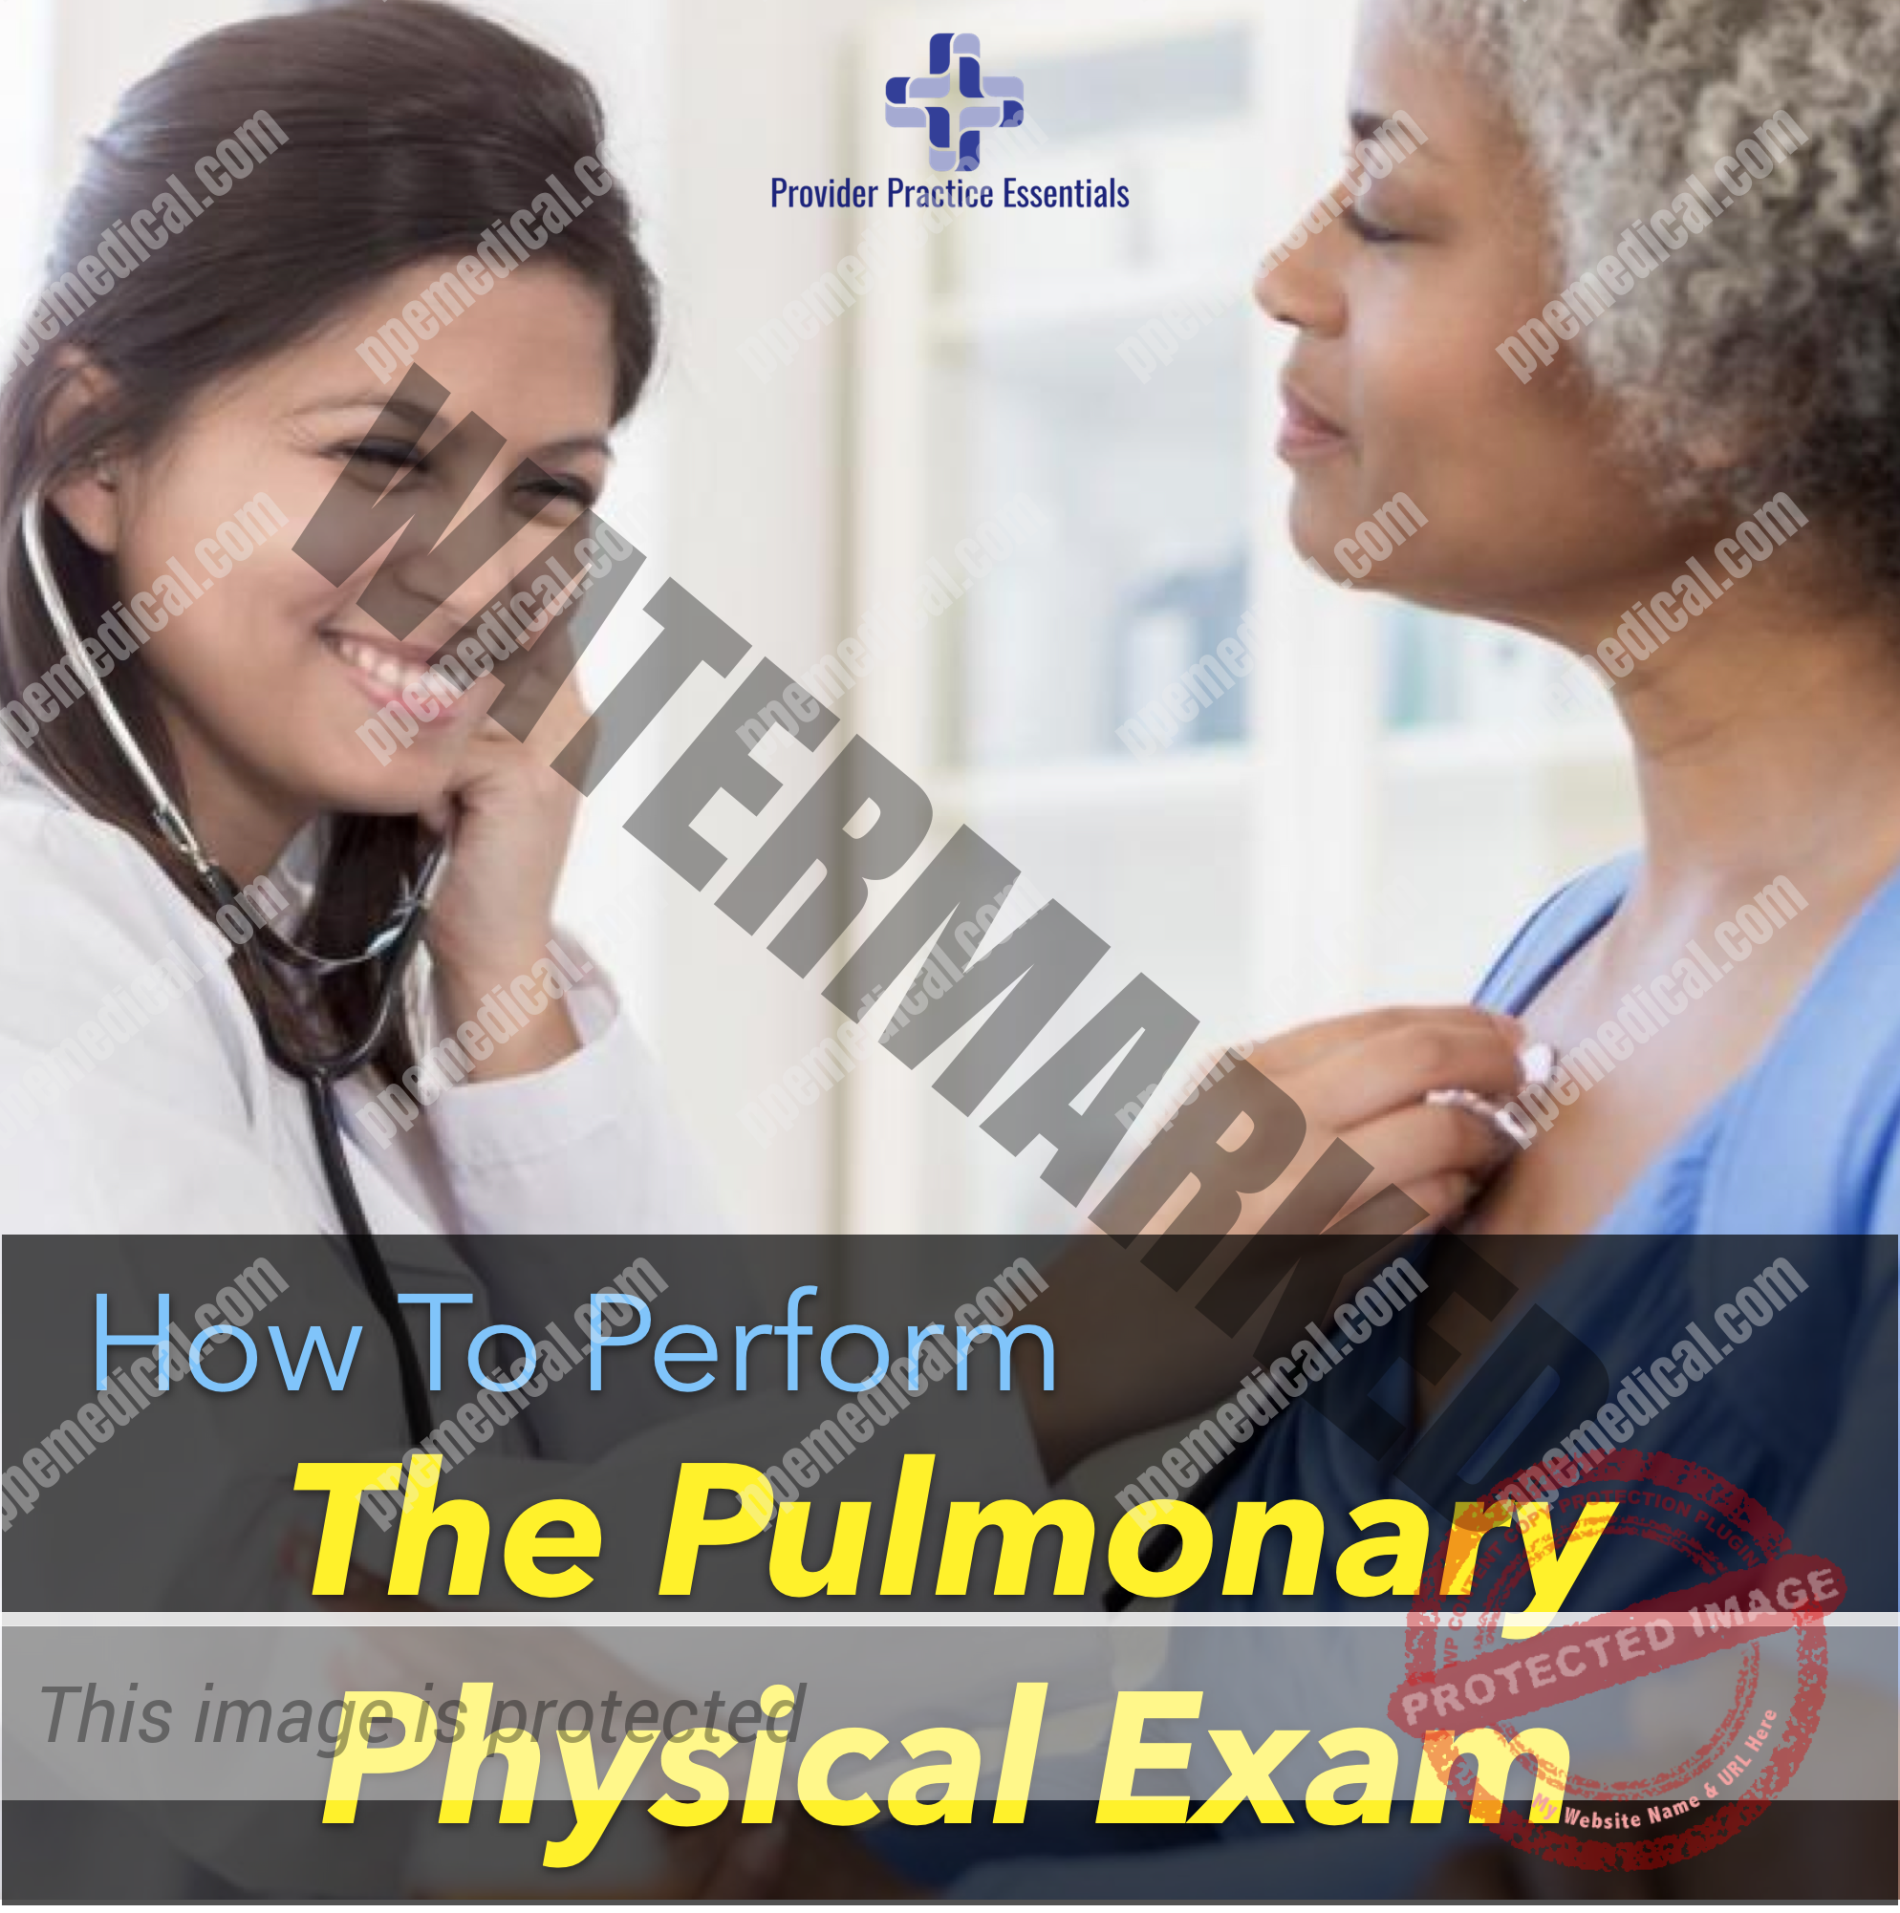 how to perform the pulmonary physical examination